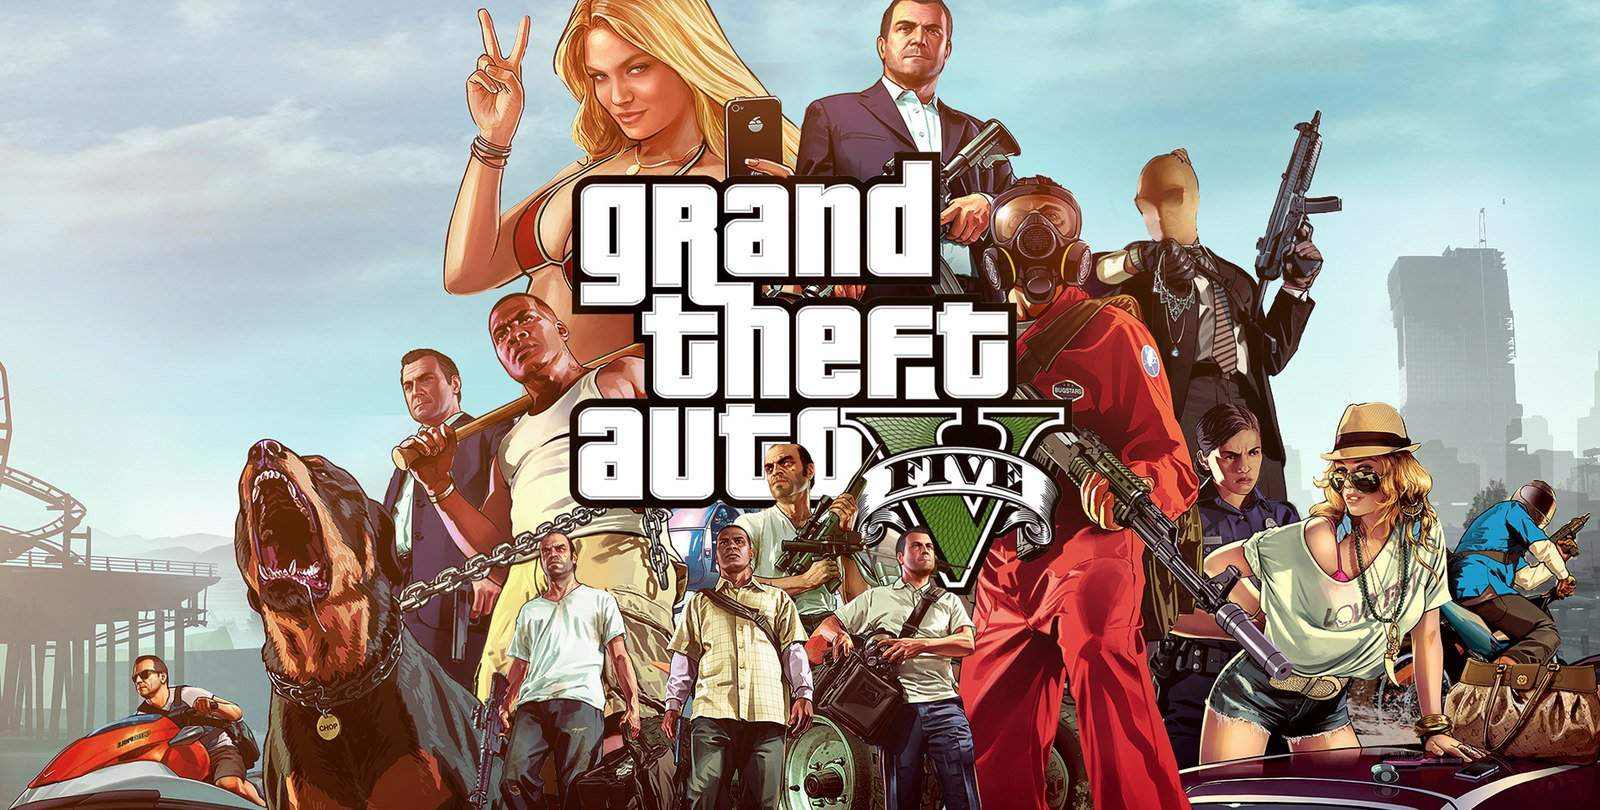 Grand Theft Auto V is coming to PC, Xbox One and PlayStation 4 this year.